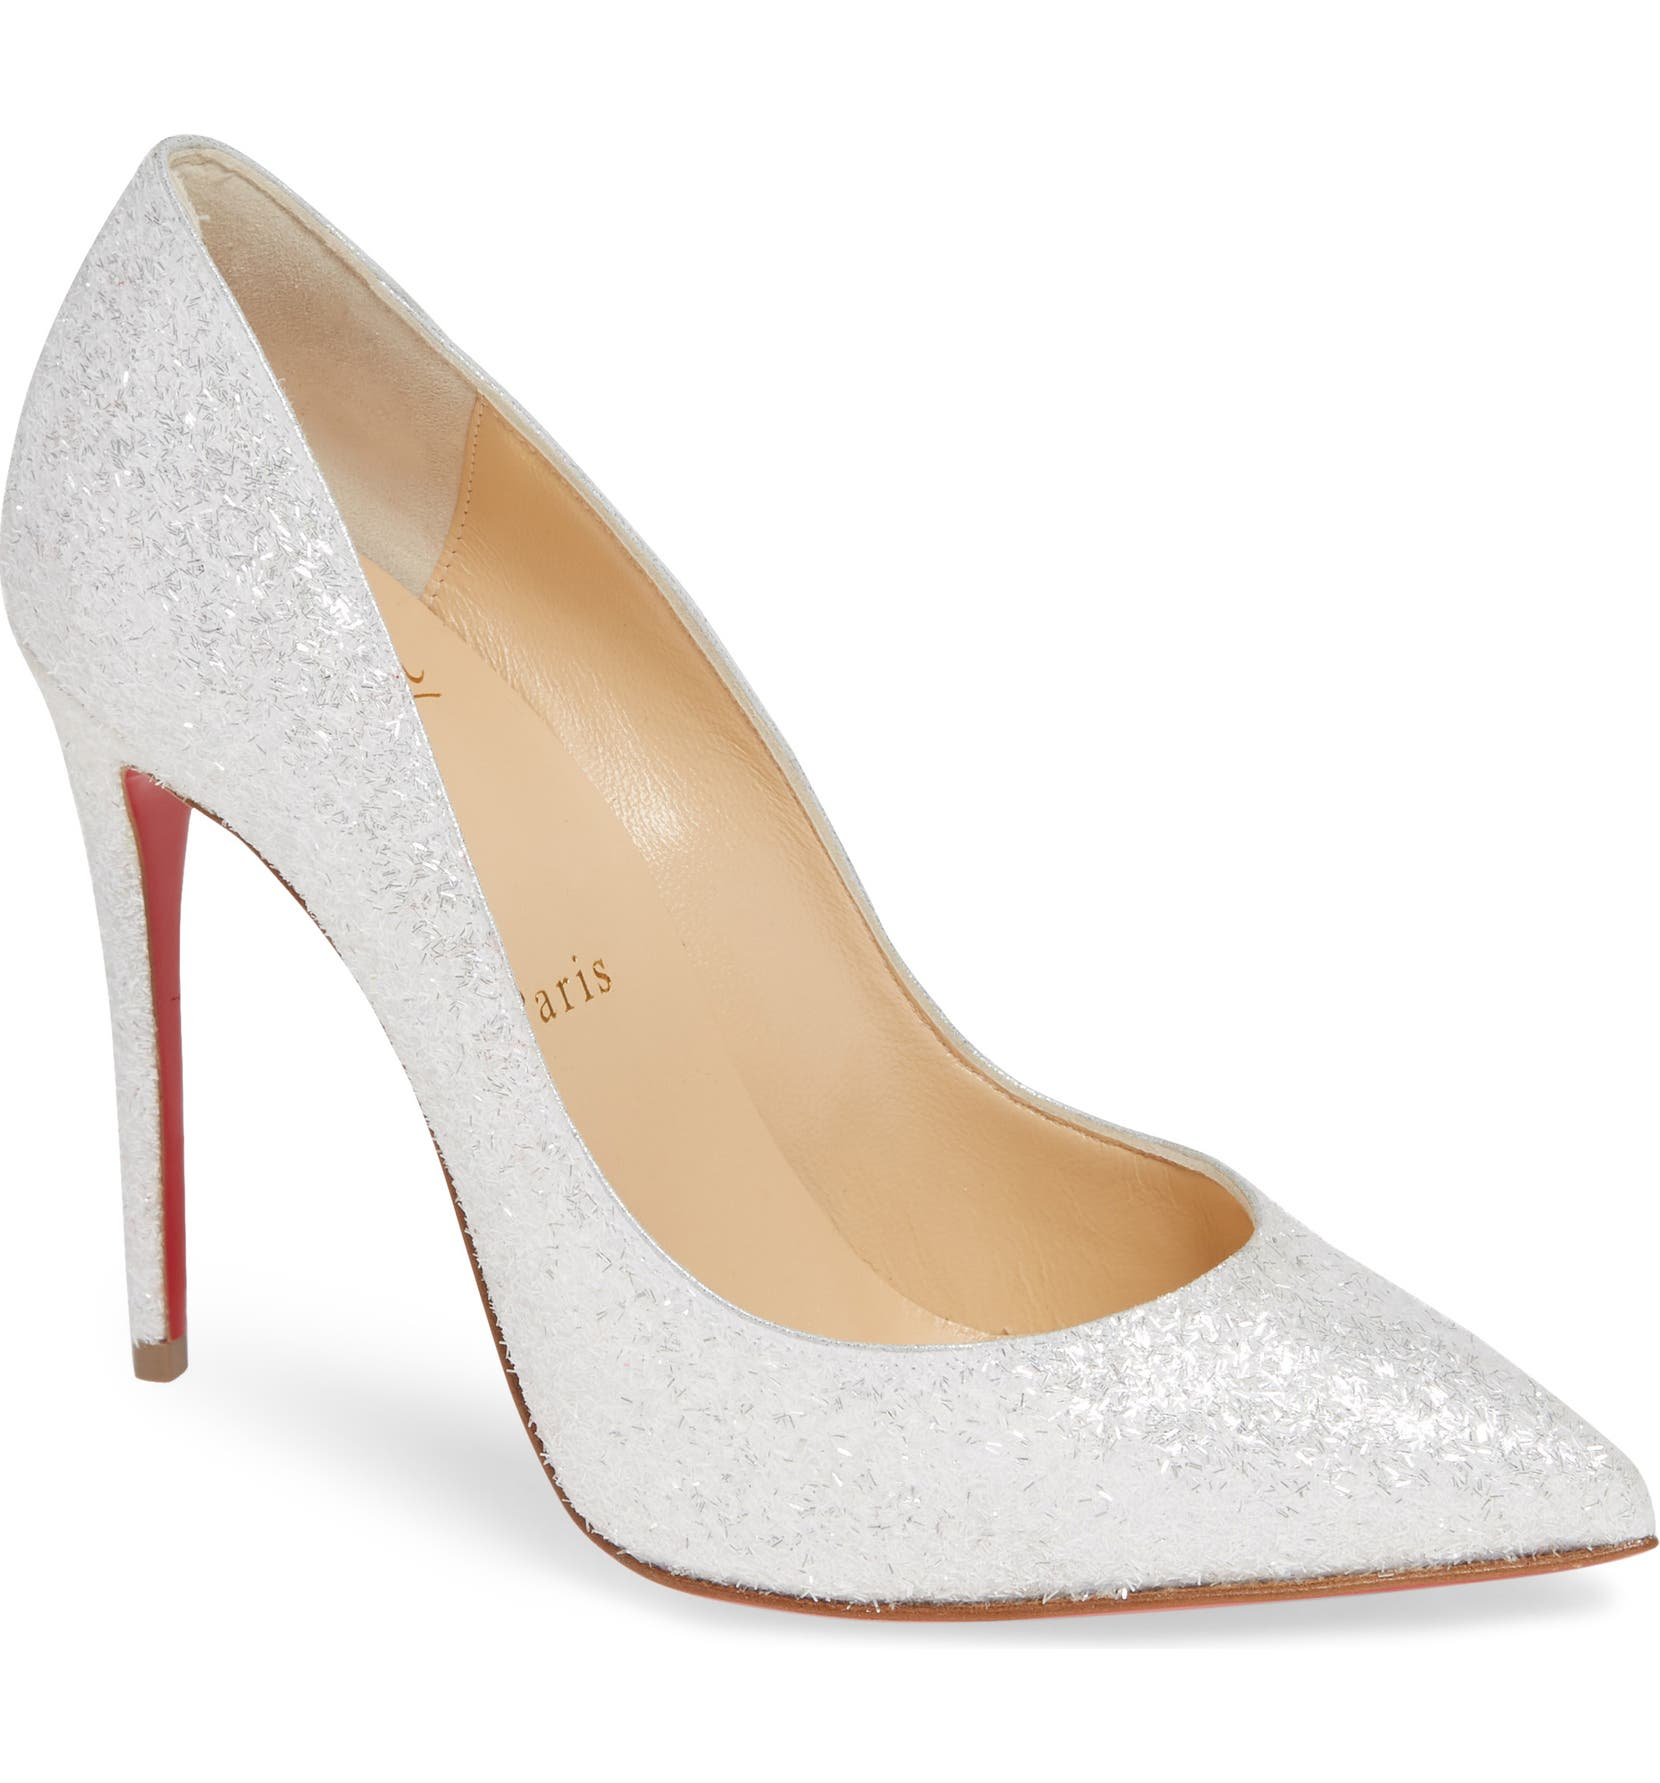 Christian Louboutin Pigalle Follies Pointy Toe Pump (Women)  a2939c79f